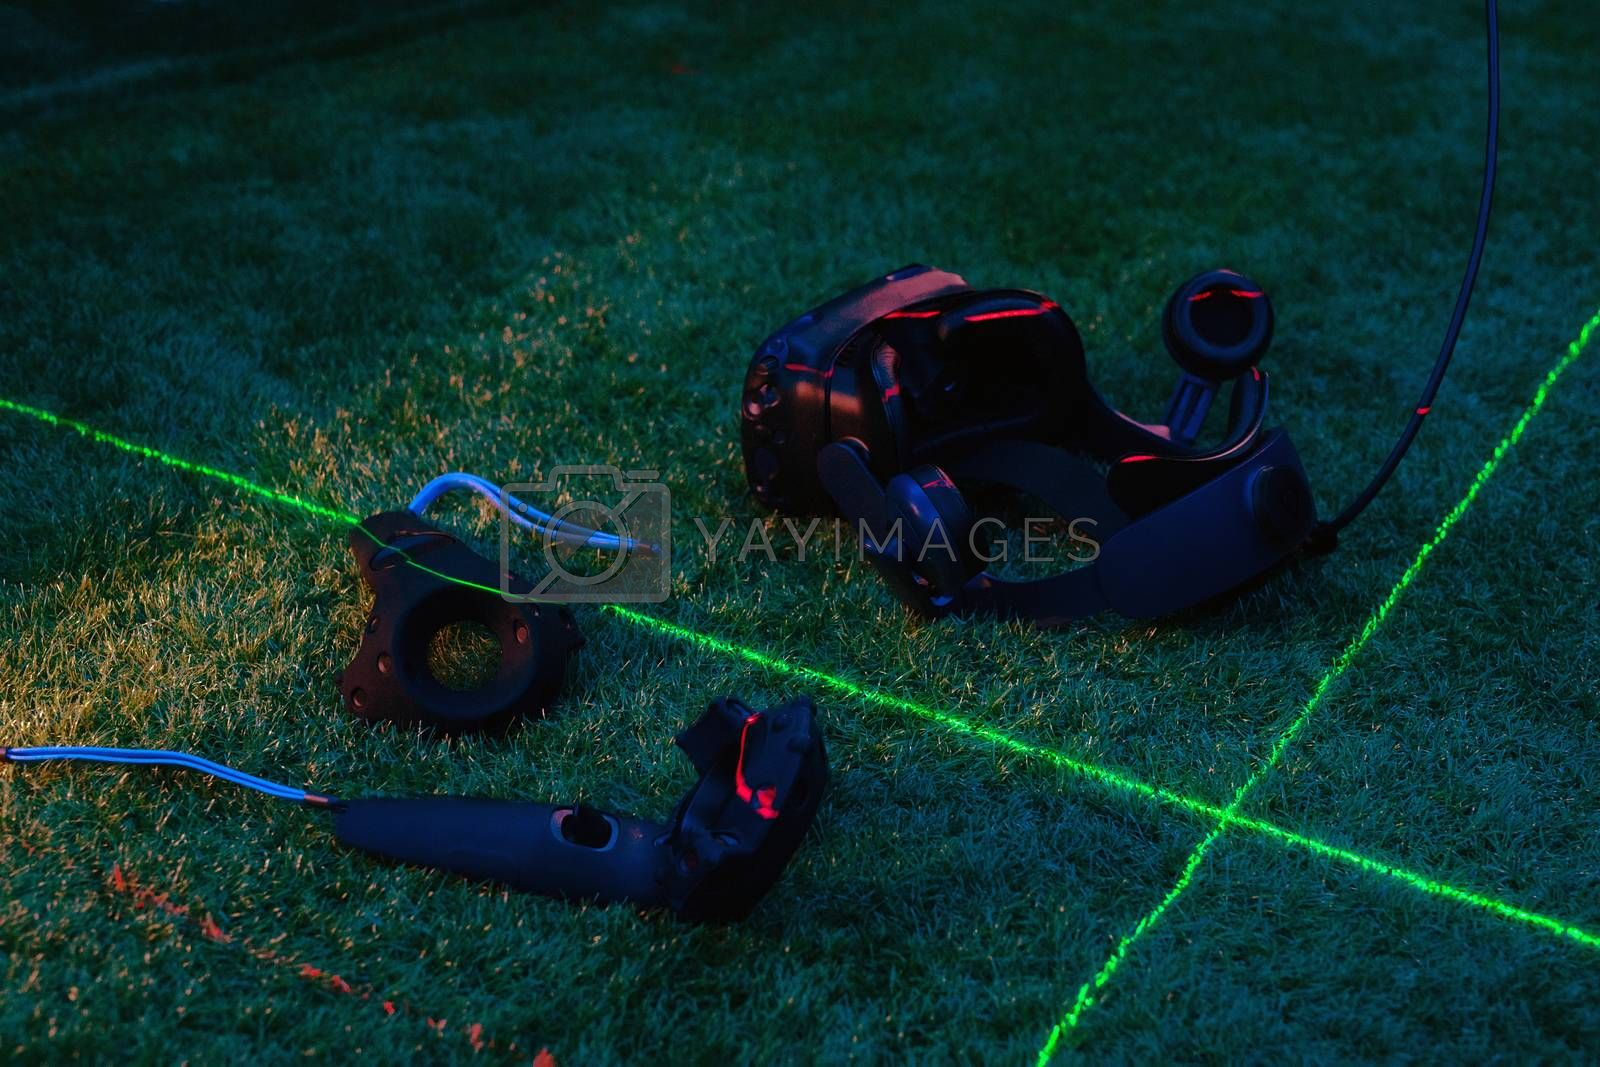 VR equipment set presented on green background goggles, scanners, two remote controllers in the light of green and red lasers